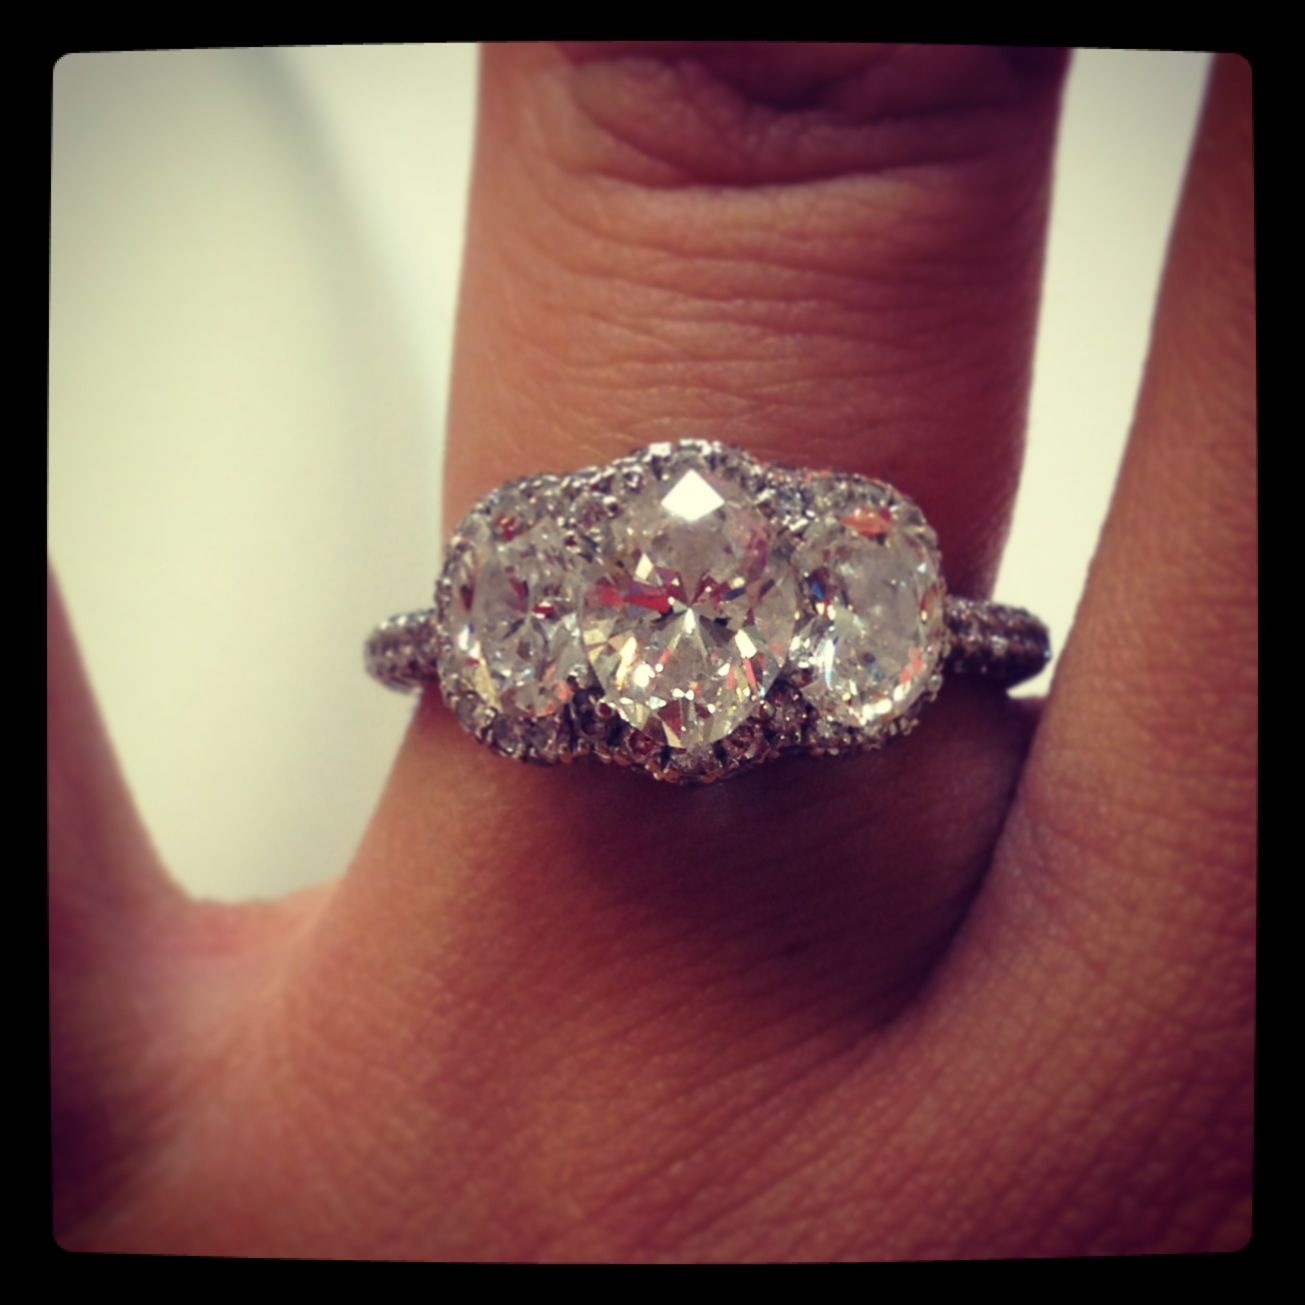 jared wedding rings Love my engagement ring 2 3 carat Neil lane 3 stone engagement ring from Jared s